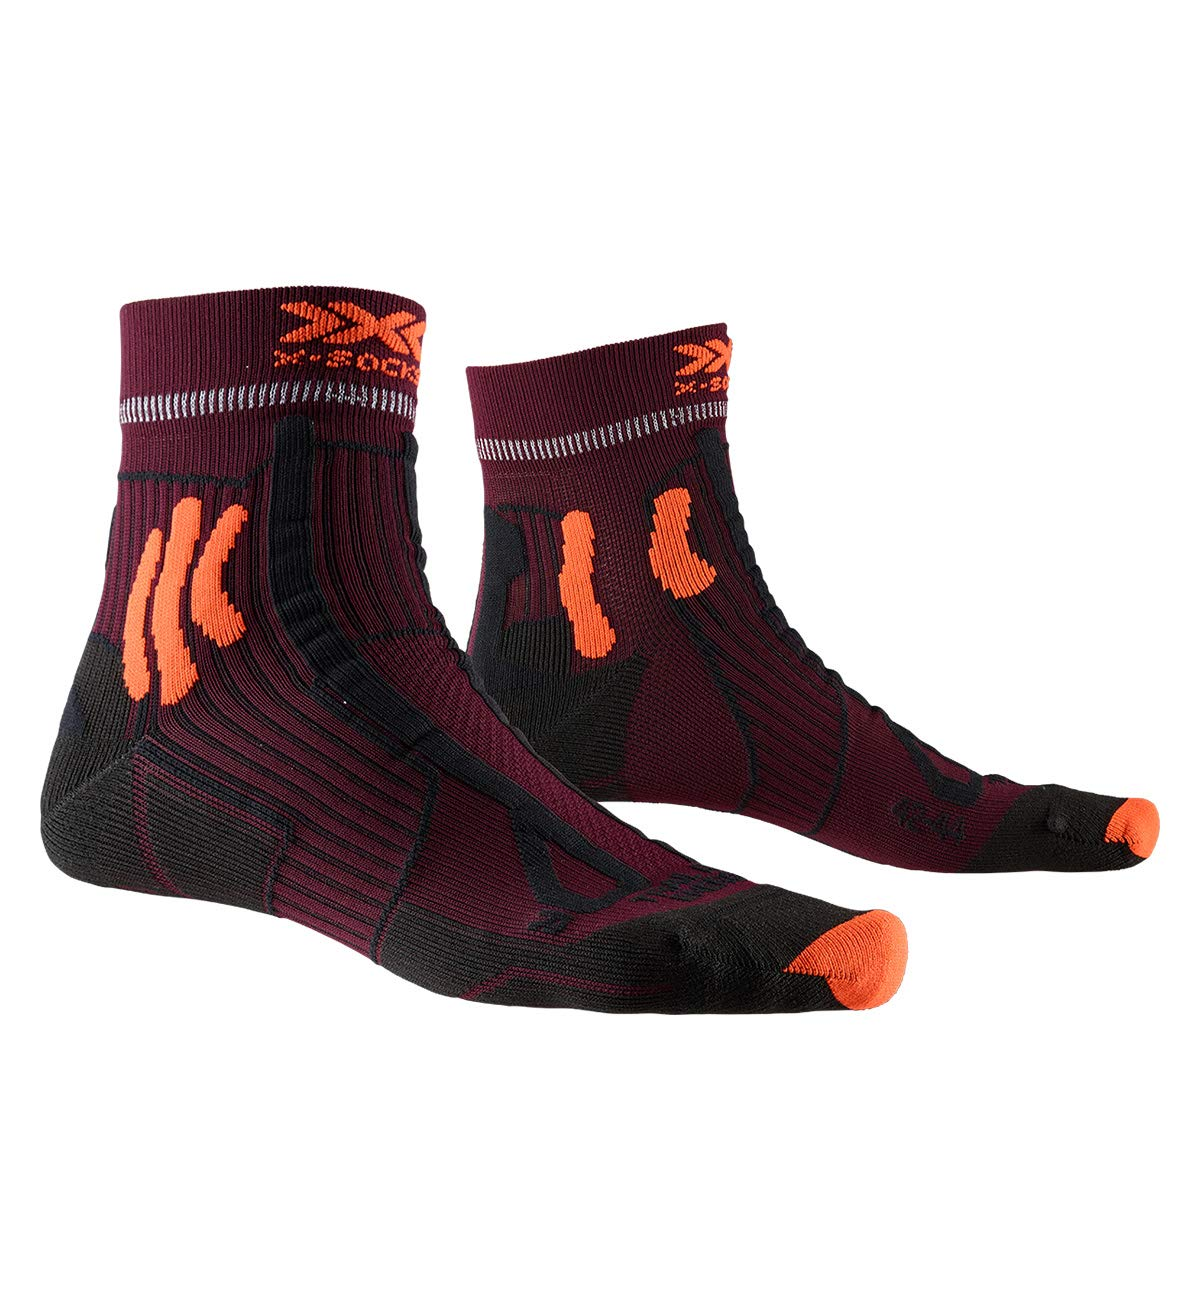 X-Socks Socks Trail Run Energy, Sunset Orange/Opal Black, 45-47, XS-RS13S19U-O00